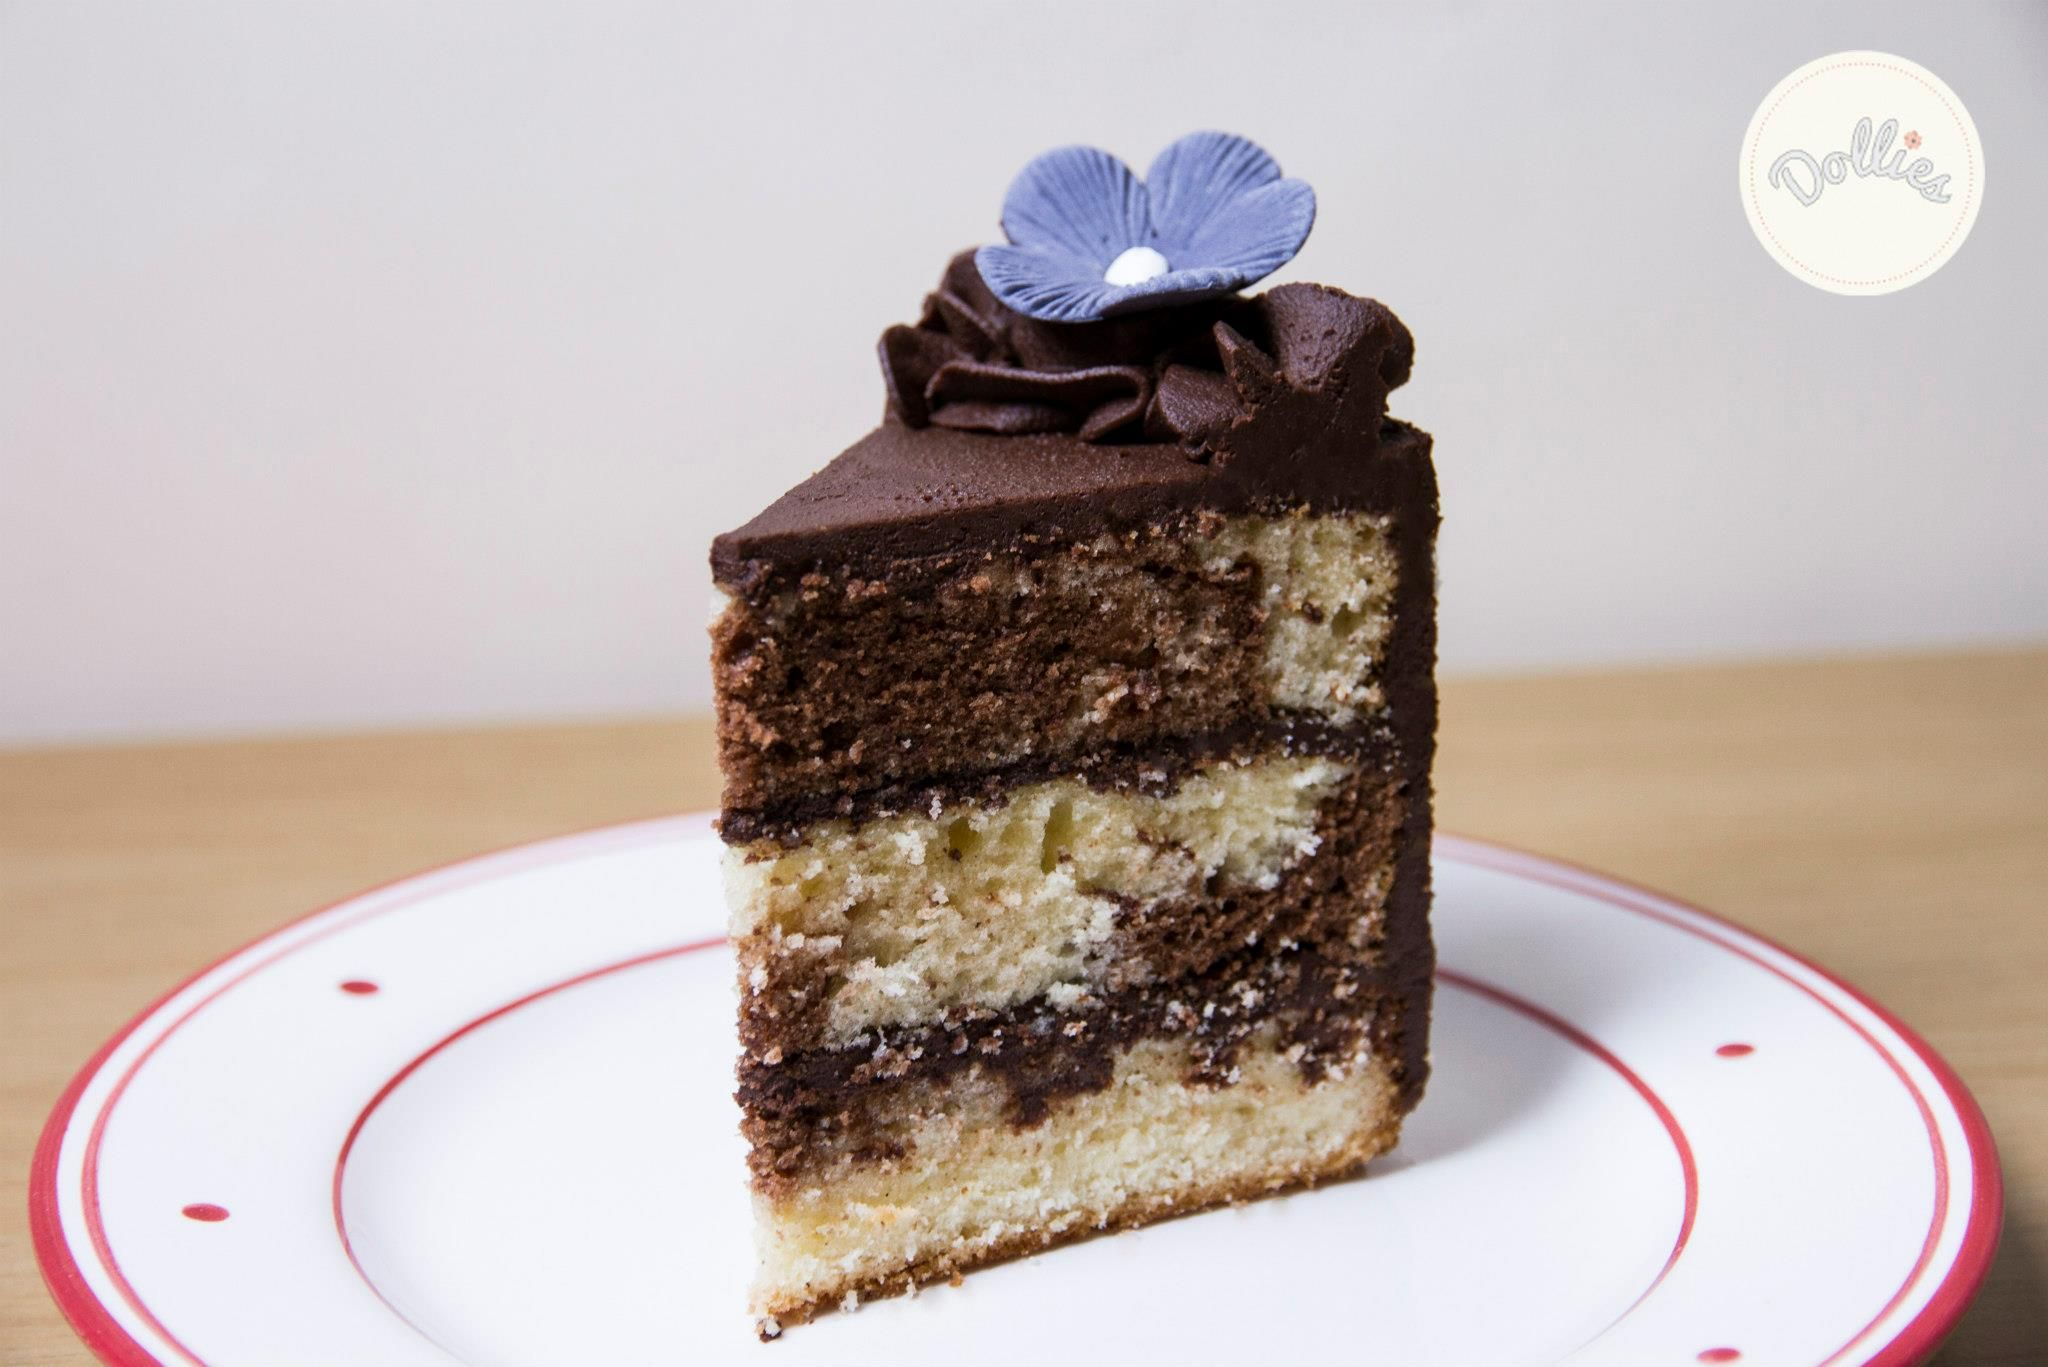 ... chocolate hazelnut cake flourless chocolate and vanilla marble cake